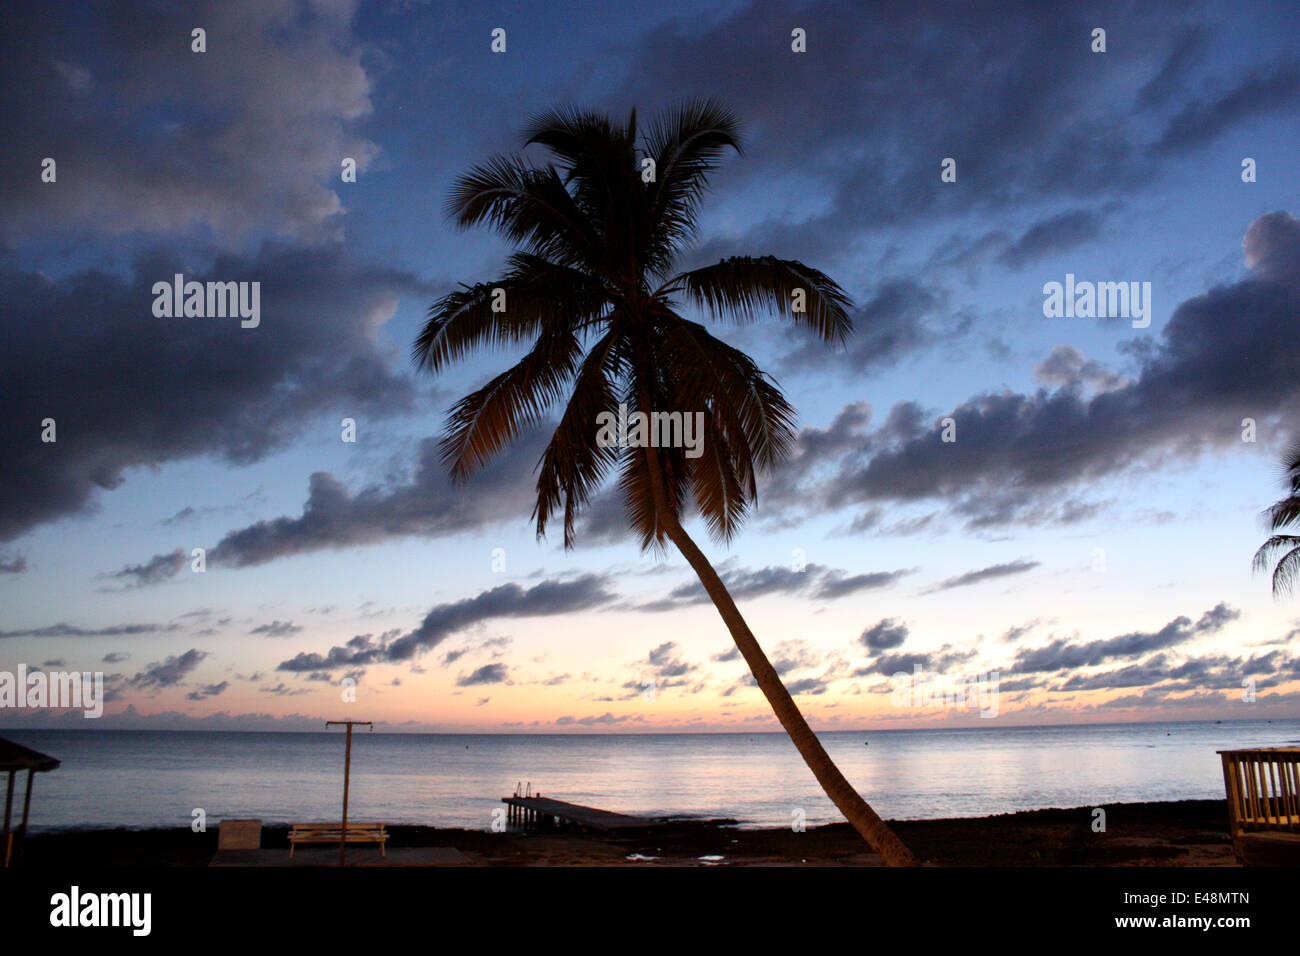 A palm tree on 7-mile beach in Grand Cayman - Stock Image